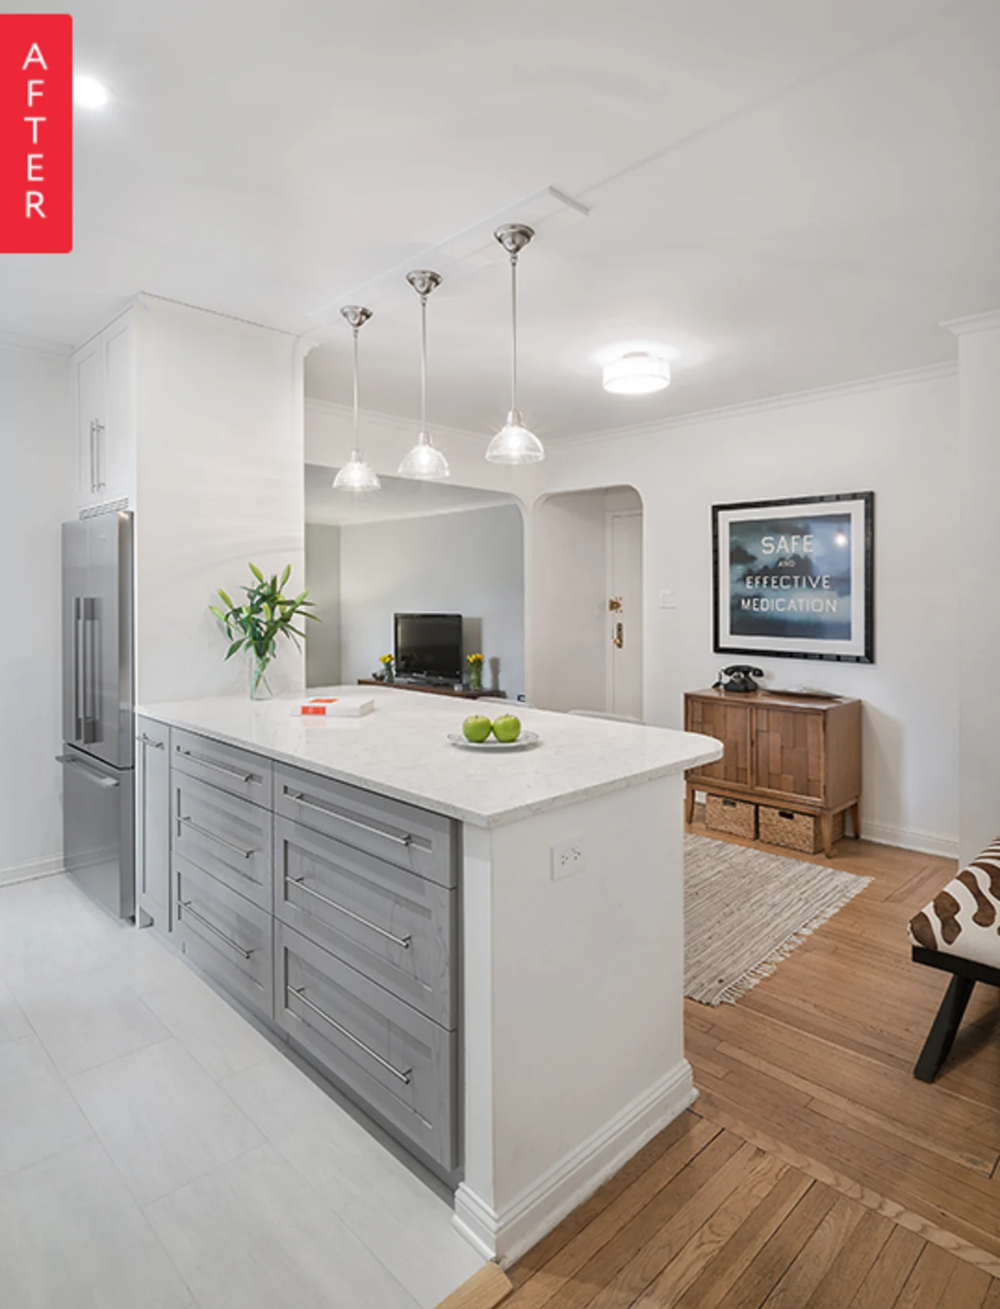 Before & After: A NYC Galley Kitchen Opens Up #galleykitchenlayouts